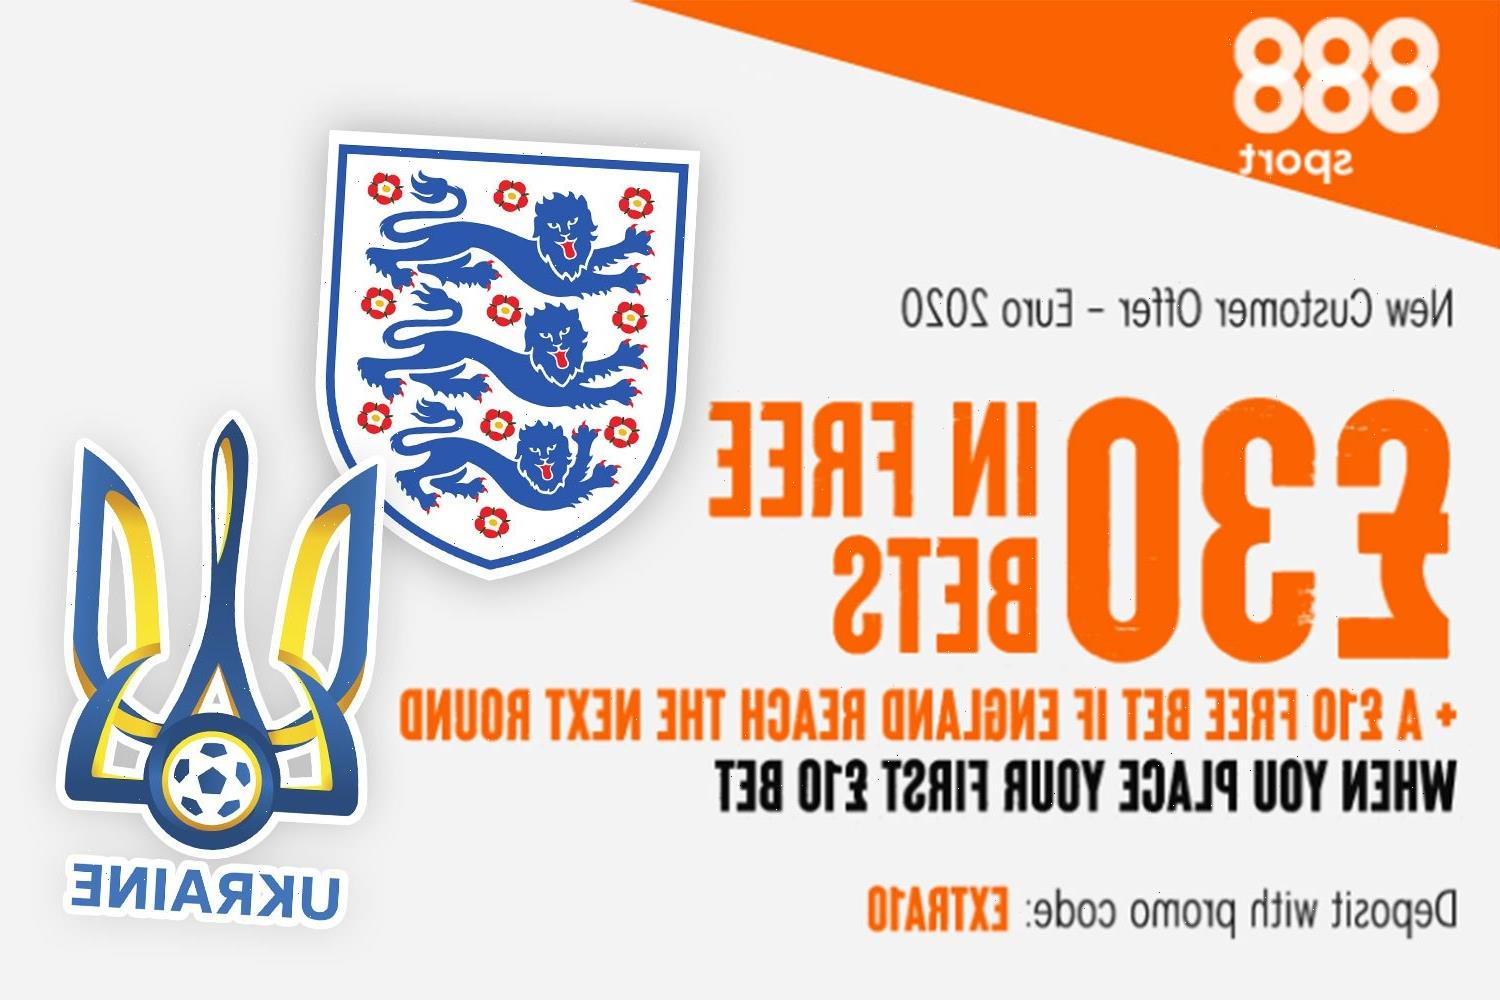 Euro 2020: Get £30 in free bets plus extra £10 if England progress to the semi-finals